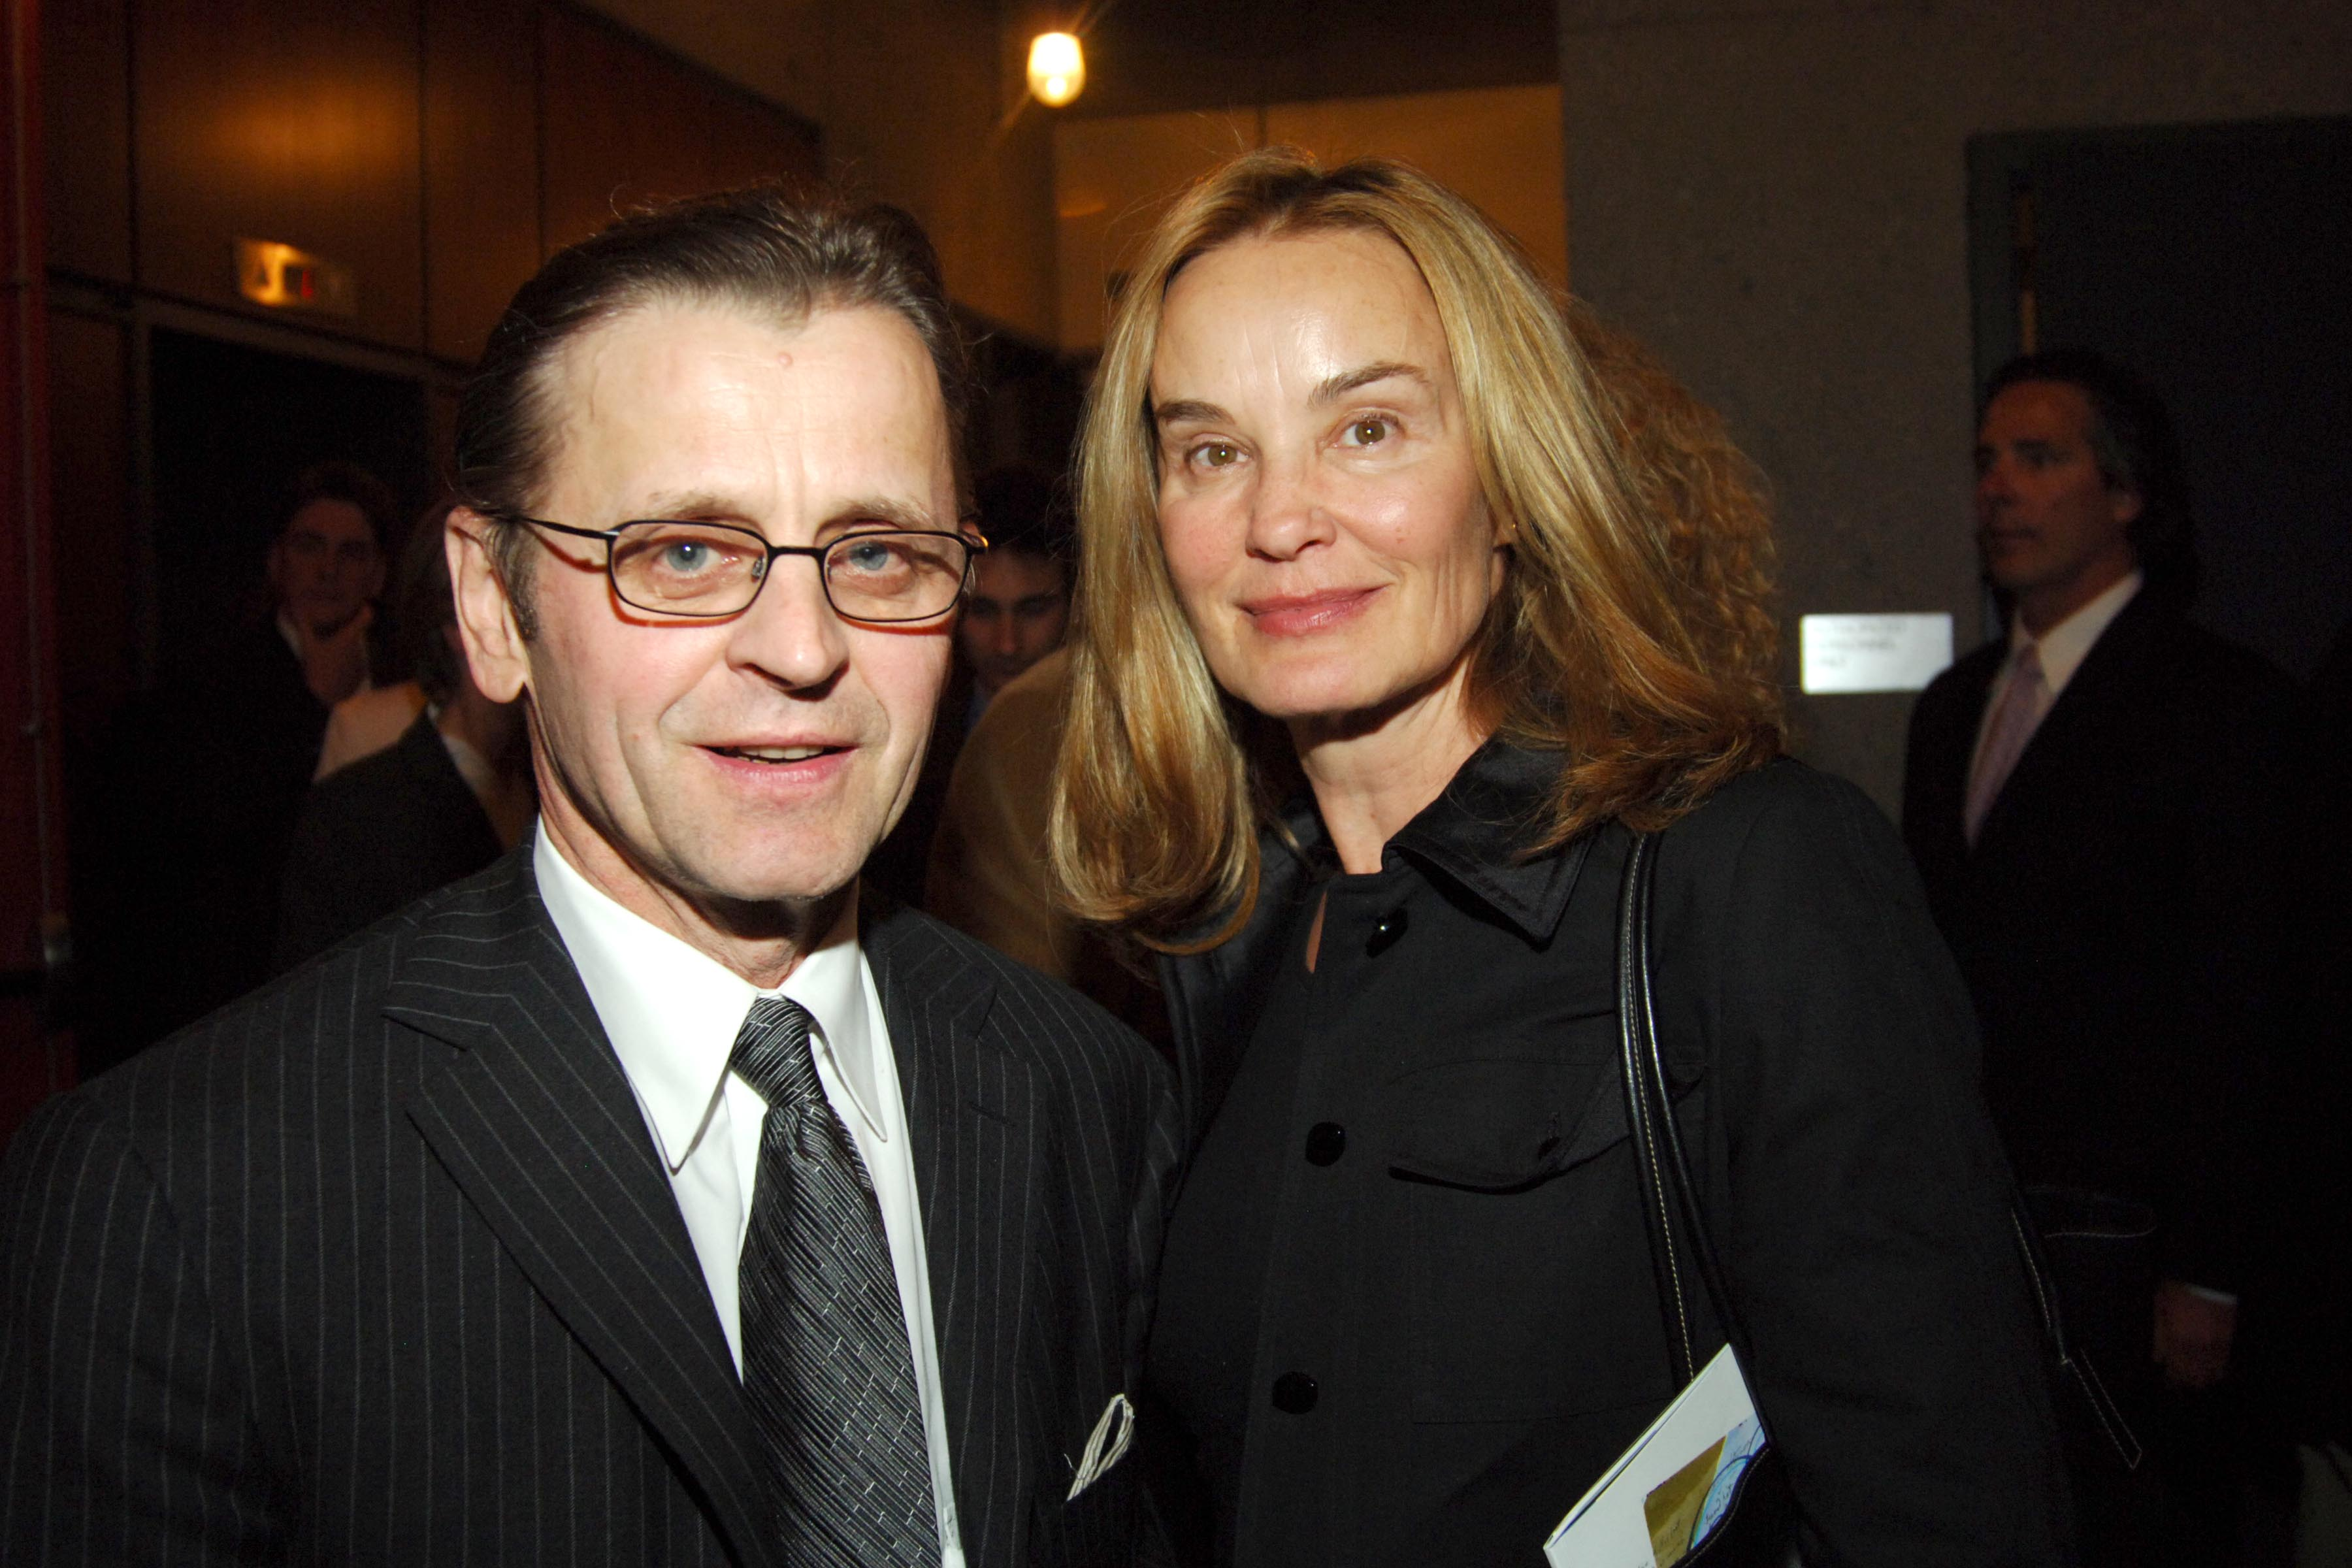 Mikhail Baryshnikov and Jessica Lange attend NFAA 2006 Arts Awards at The Baryshnikov Arts Center on April 24, 2006 in New York City | Photo: Getty Images